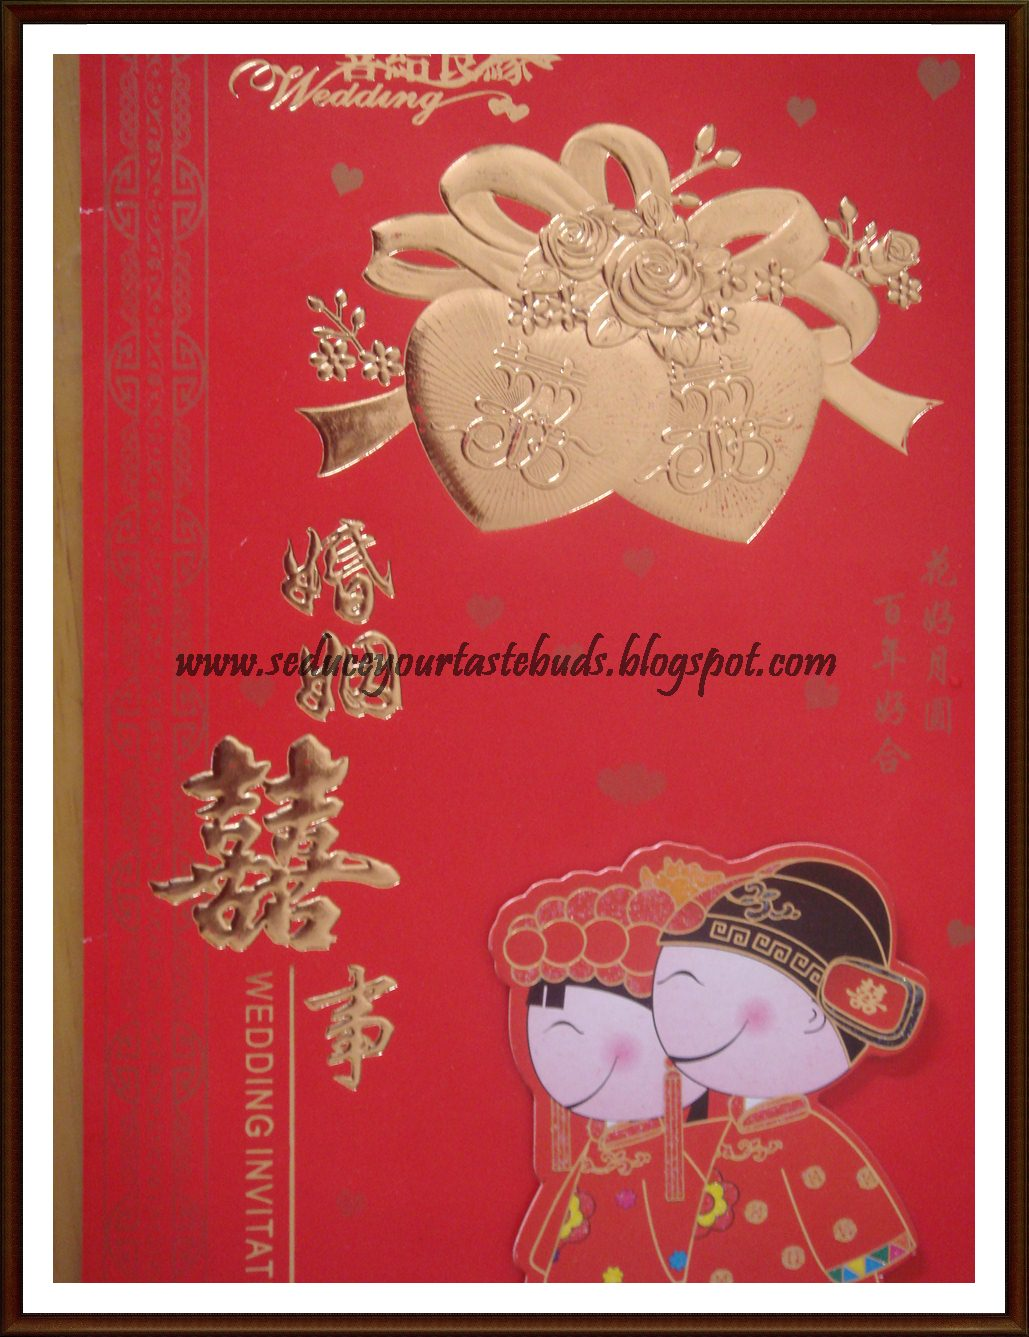 Saying \'I Do\' - The Chinese Way - Seduce Your Tastebuds...